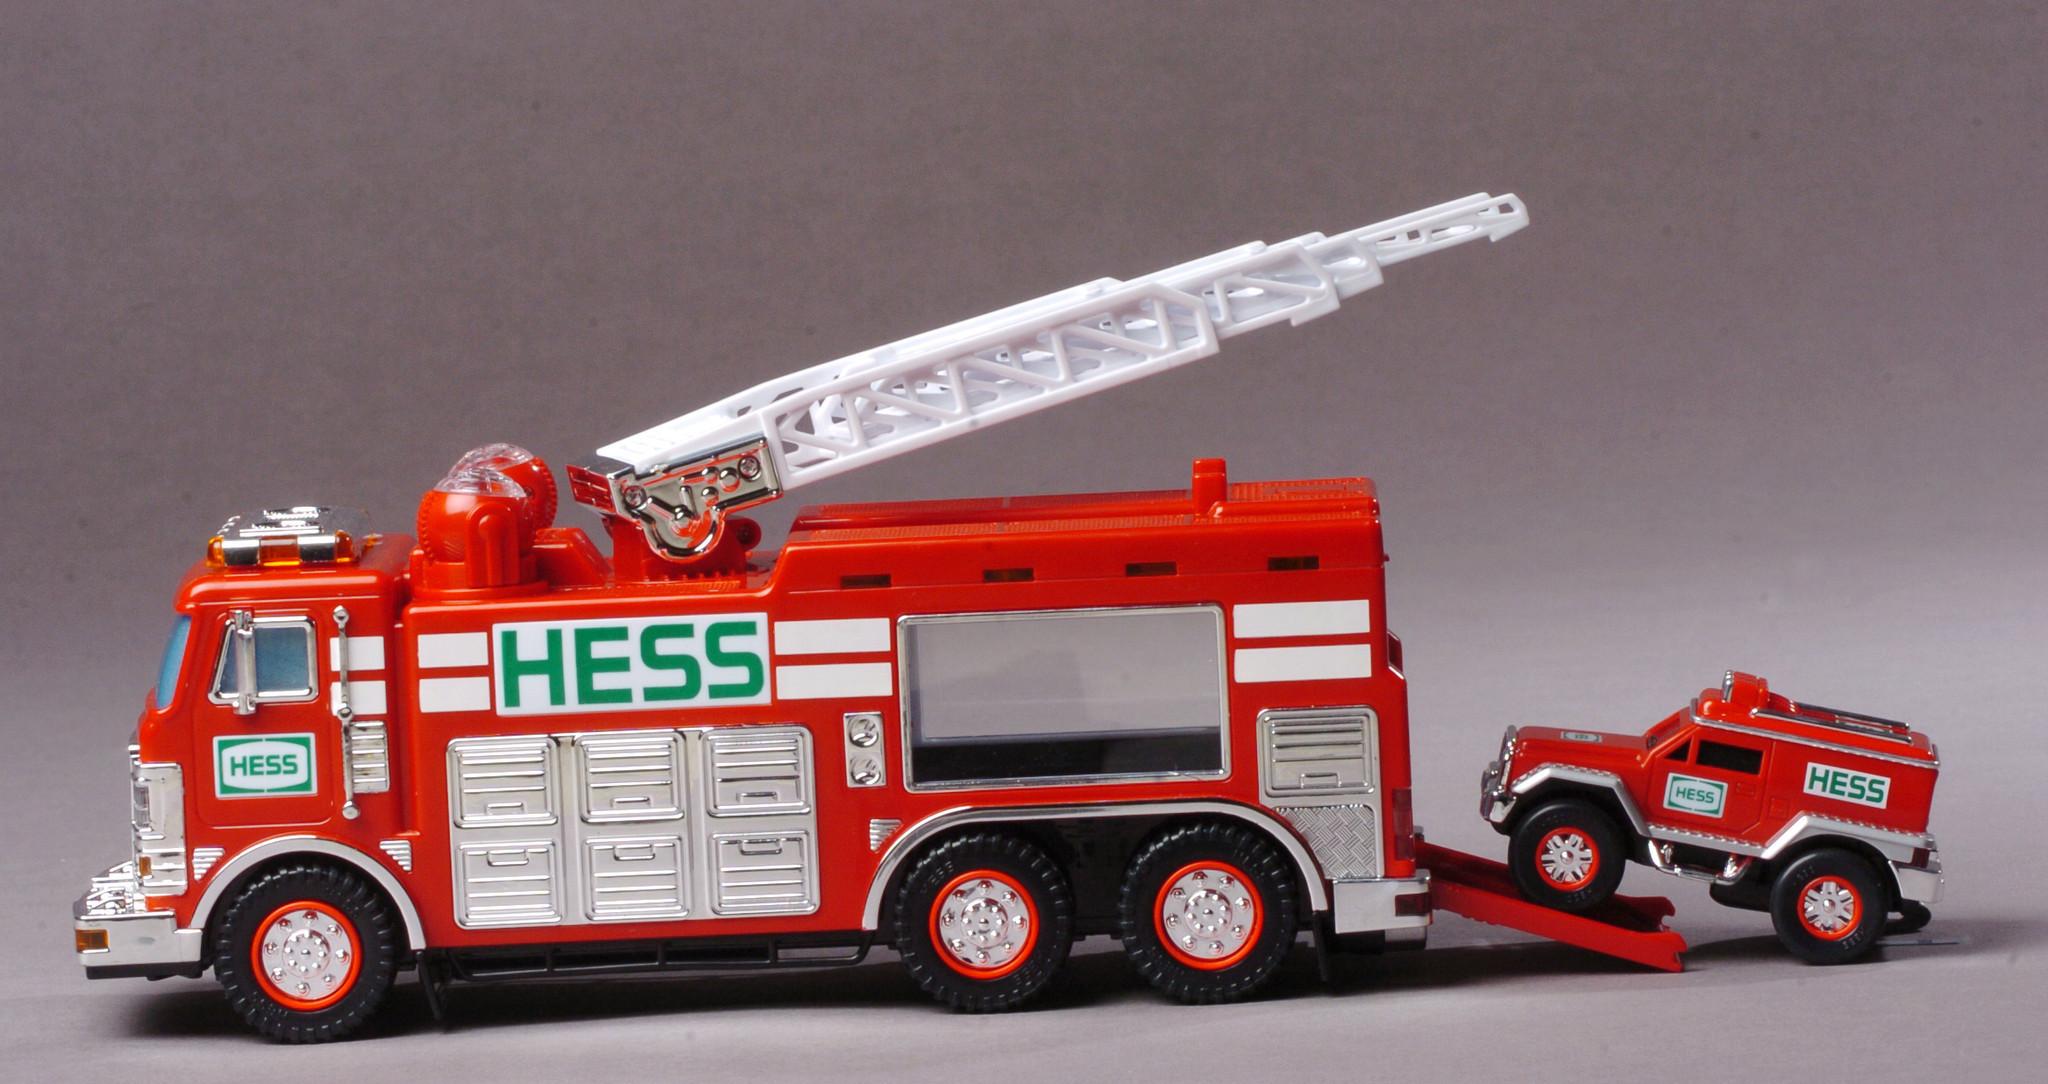 Football Toy Trucks : Hess toy truck through the years photos morning call